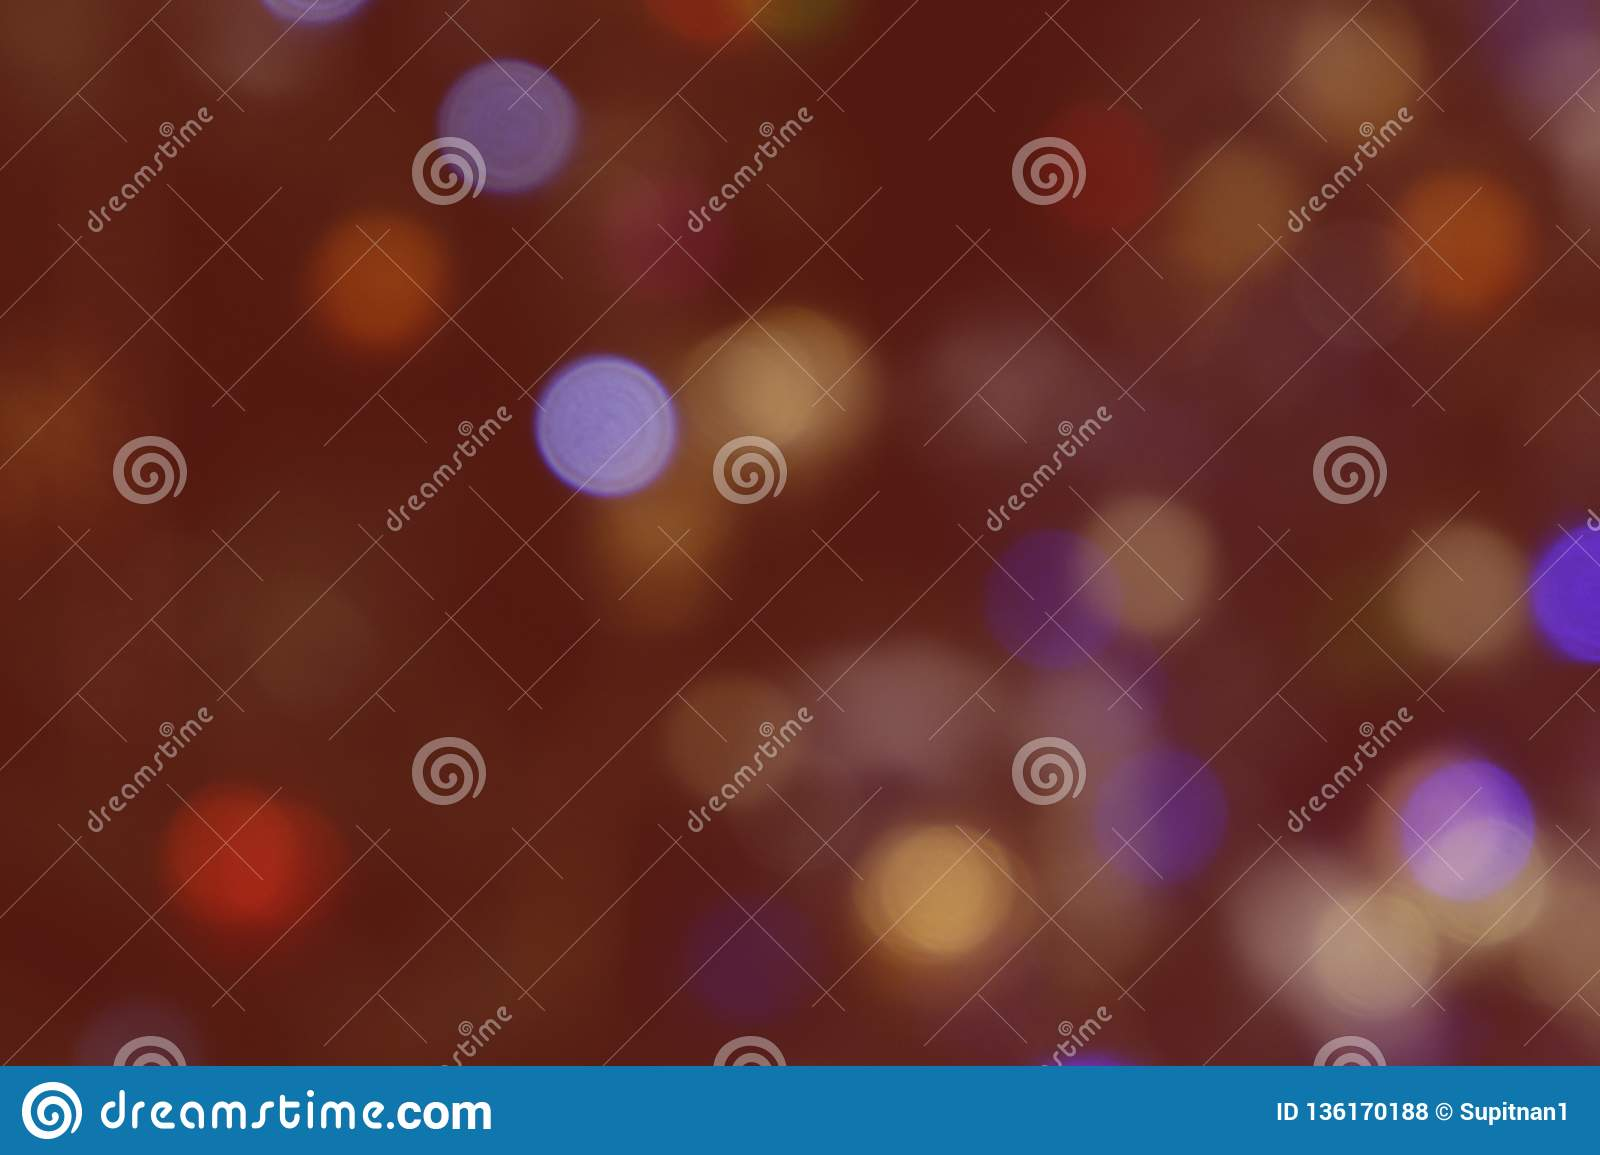 Abstract Bokeh Red background vintage texture, image.